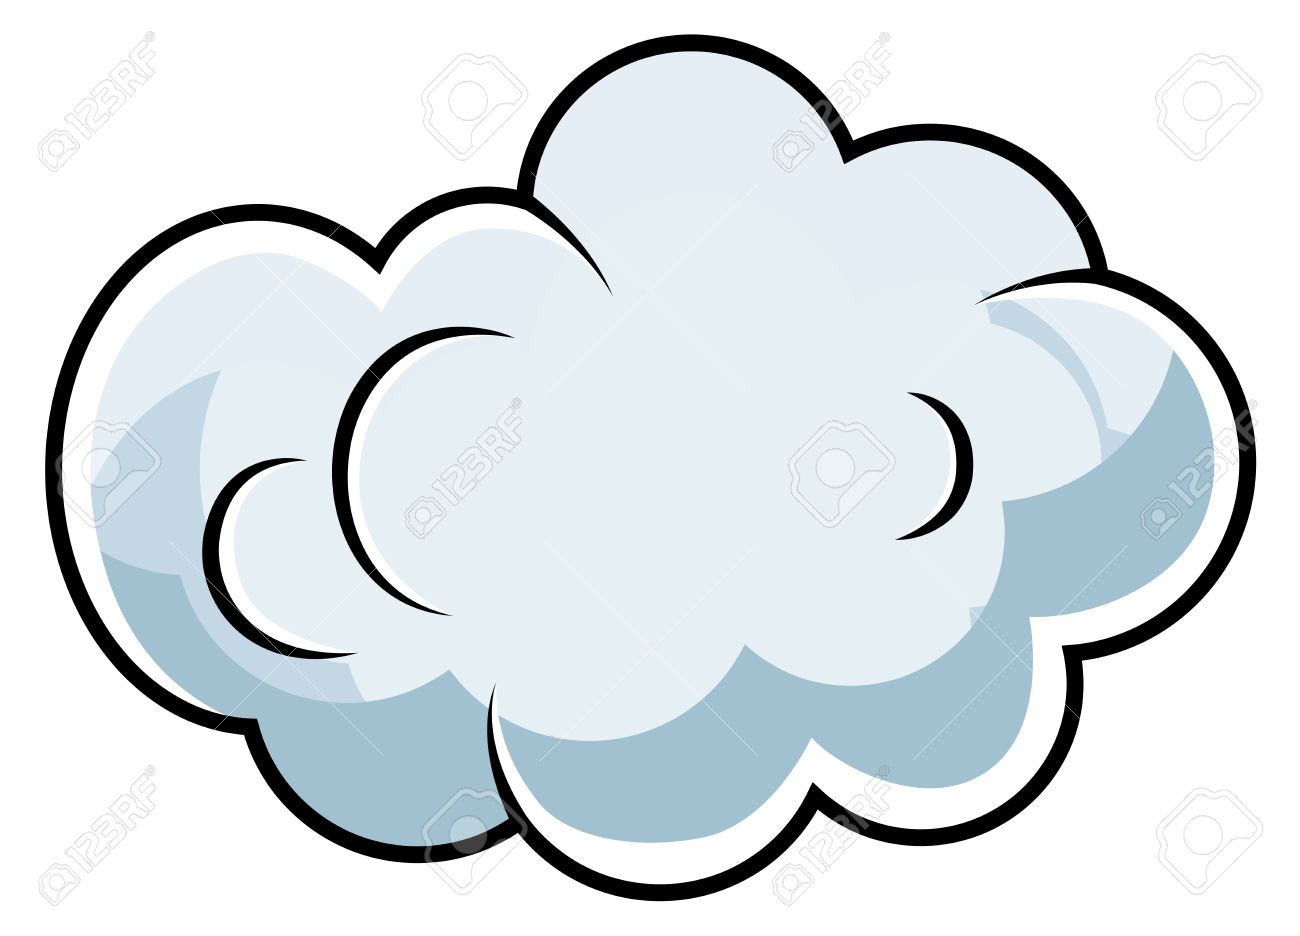 Cute Comic Cloud Cartoon Royalty Free Cliparts Vectors And Stock Illustration Image 19419686 182 free images of cloud cartoon. cute comic cloud cartoon